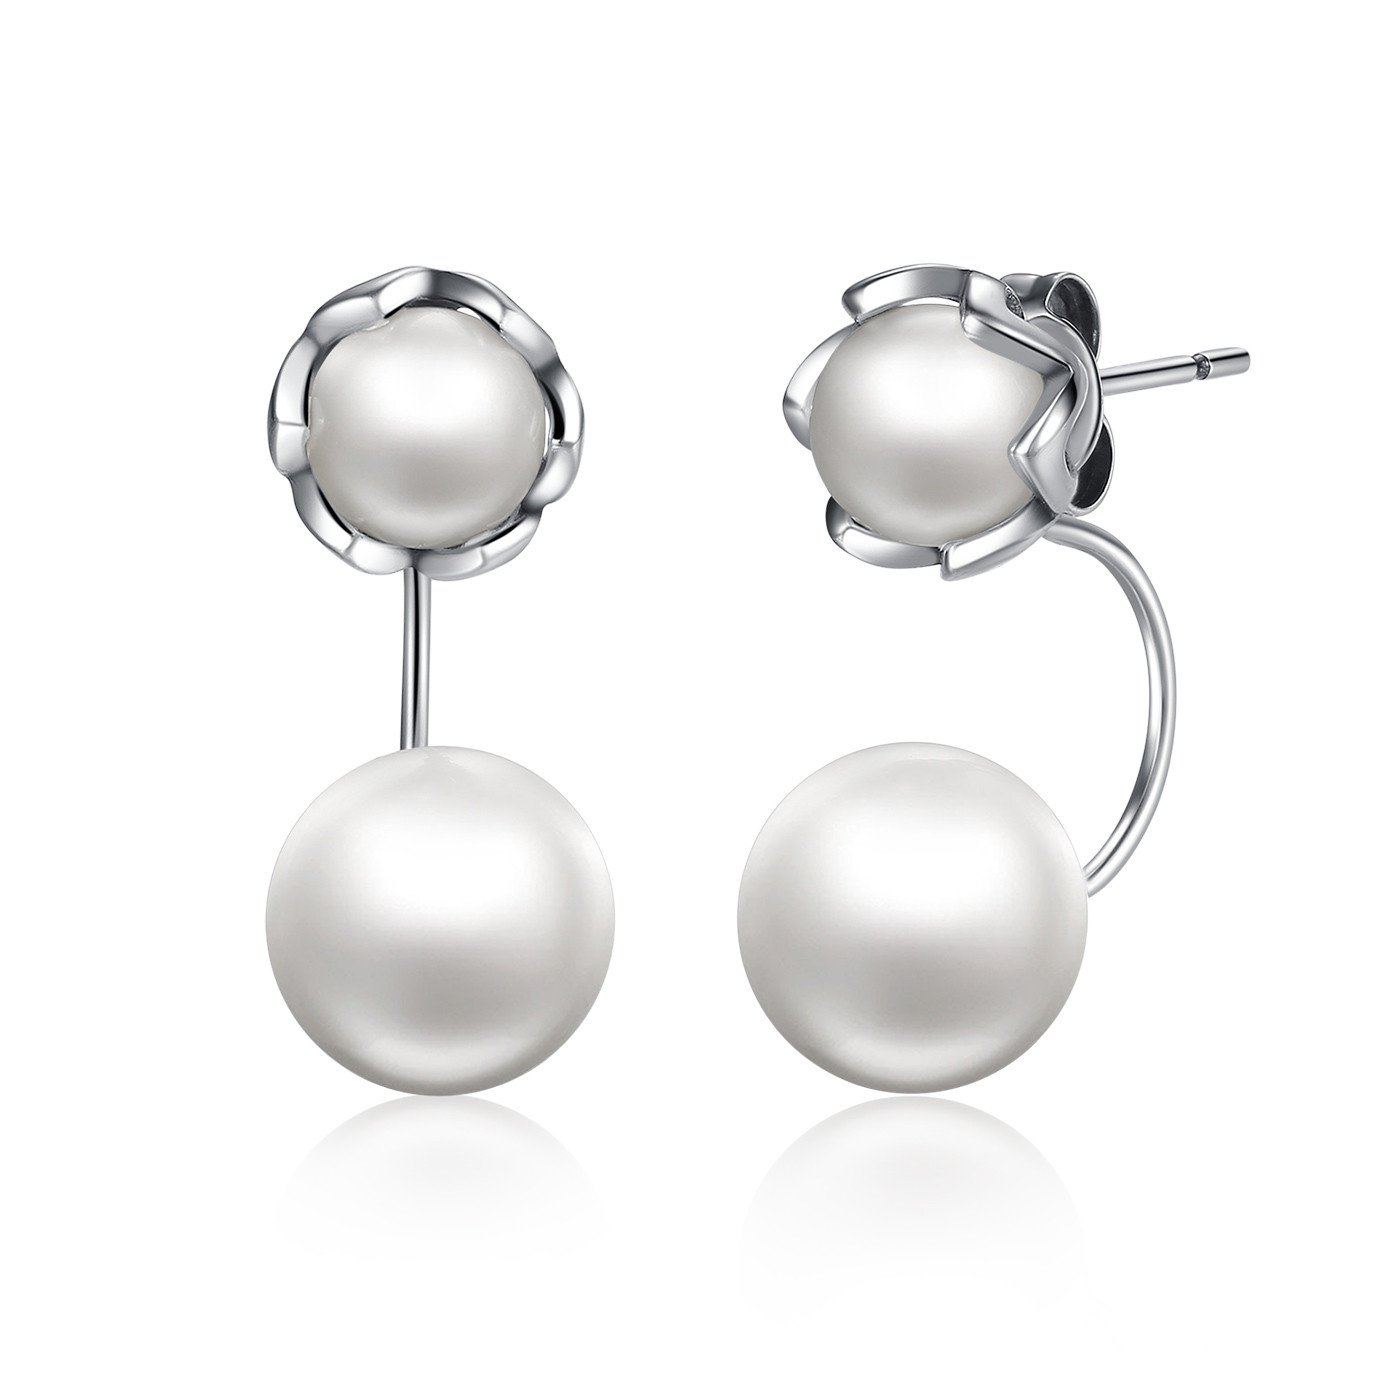 Double Cultured Pearl Earrings 925 Sterling Silver Two Sided Balls Hoop Stud Earrings Fashion Jewelry Gift